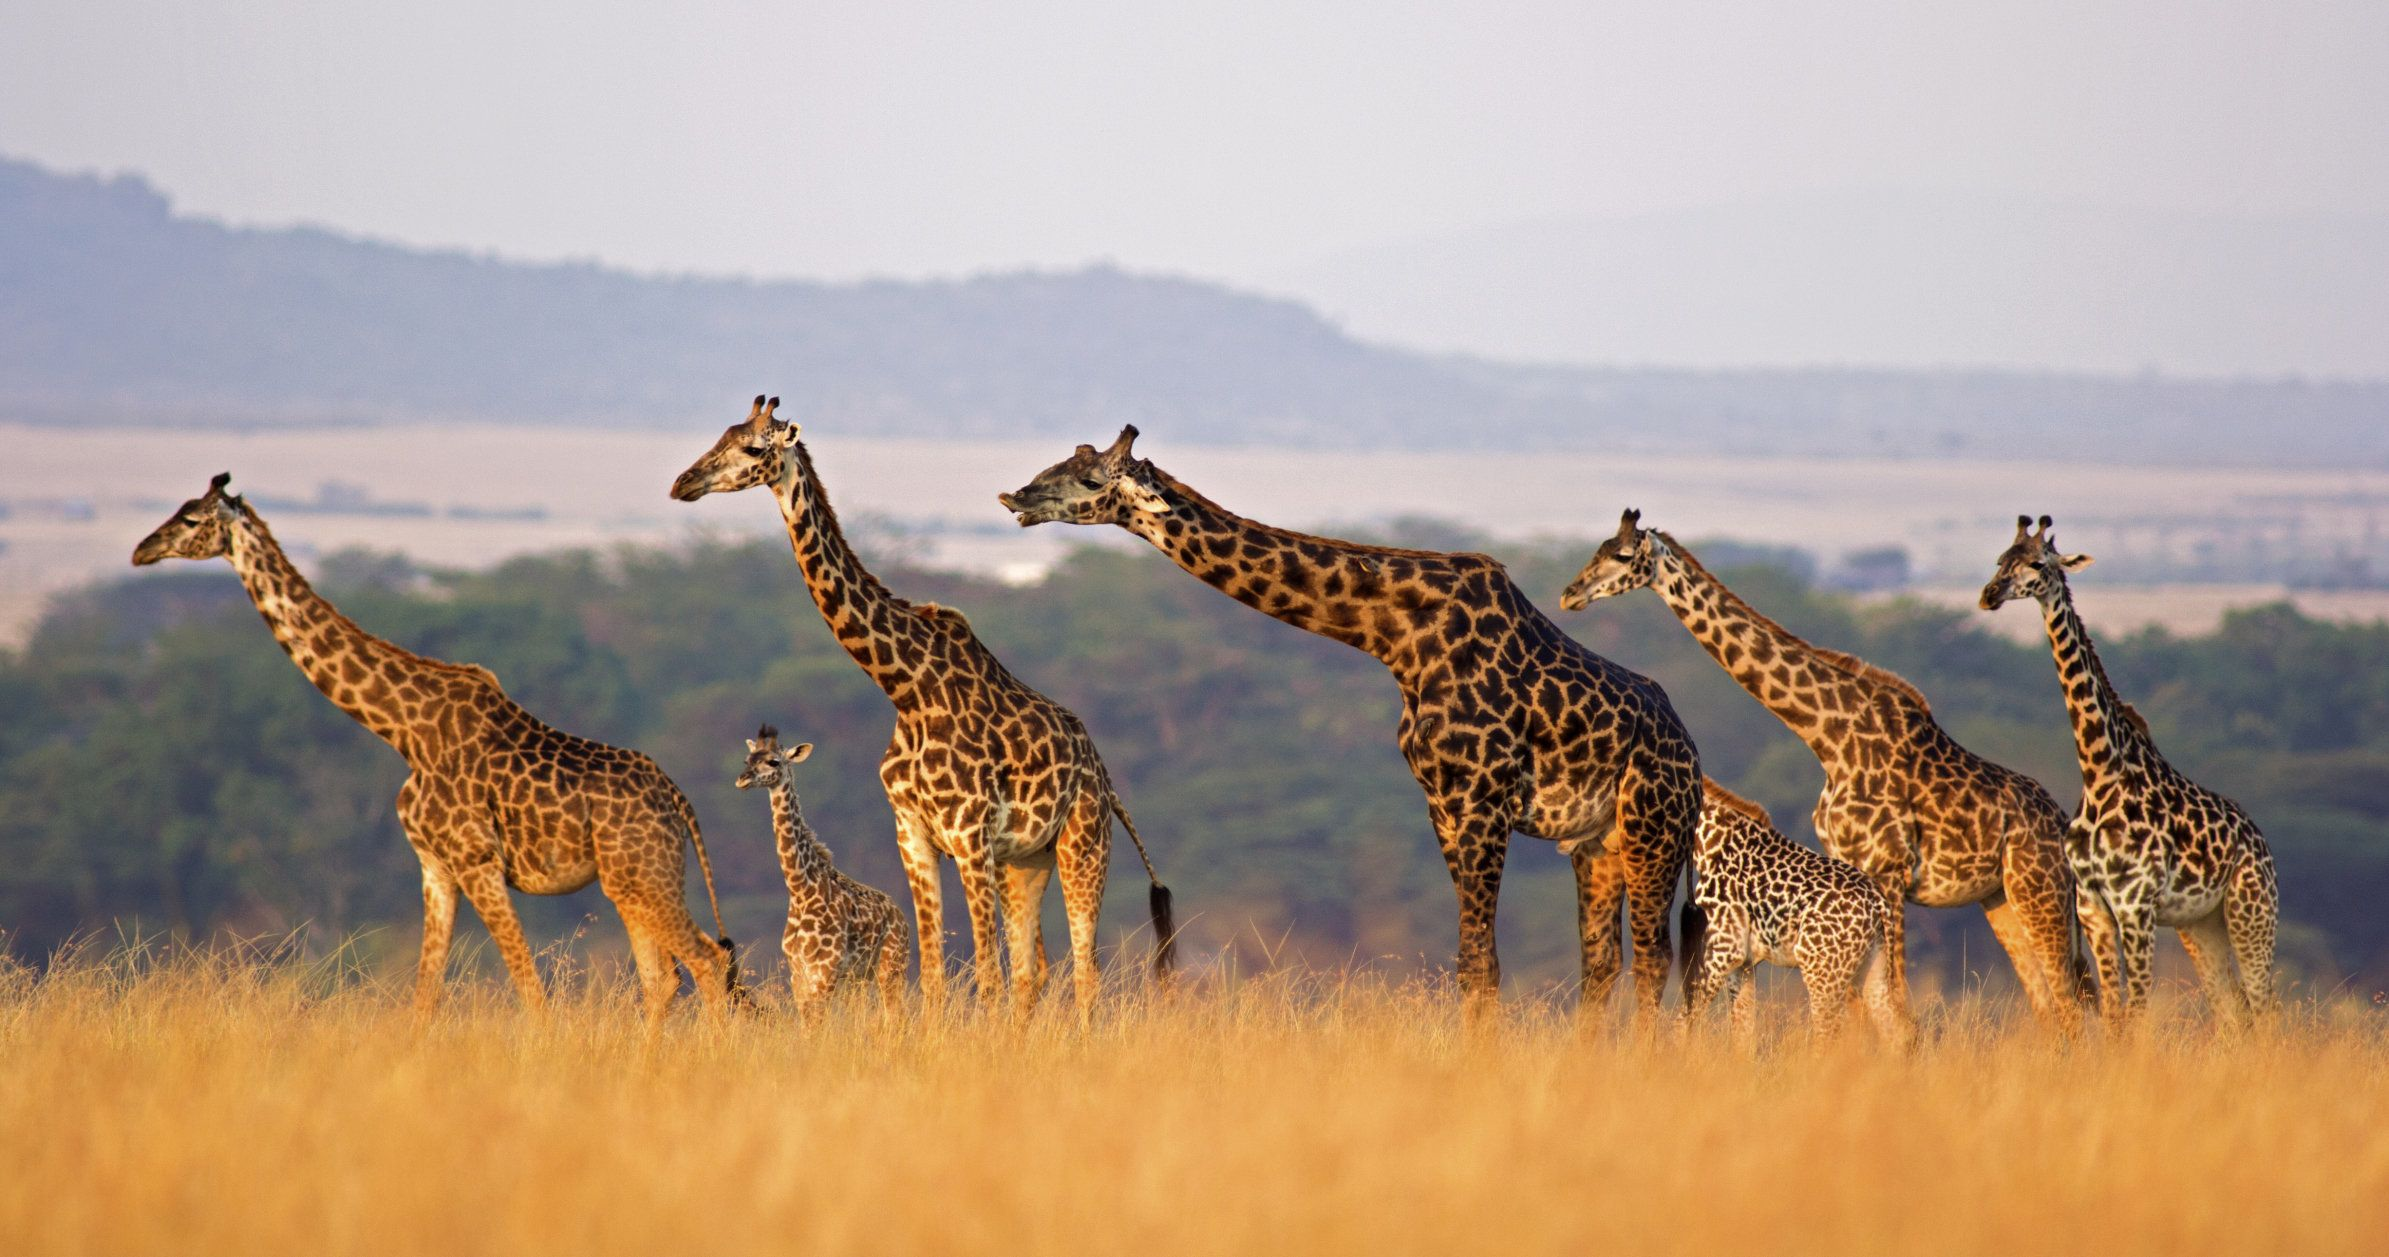 Masai giraffe of all sizes in a row against rolling landscape of the Masai Mara, Kenya